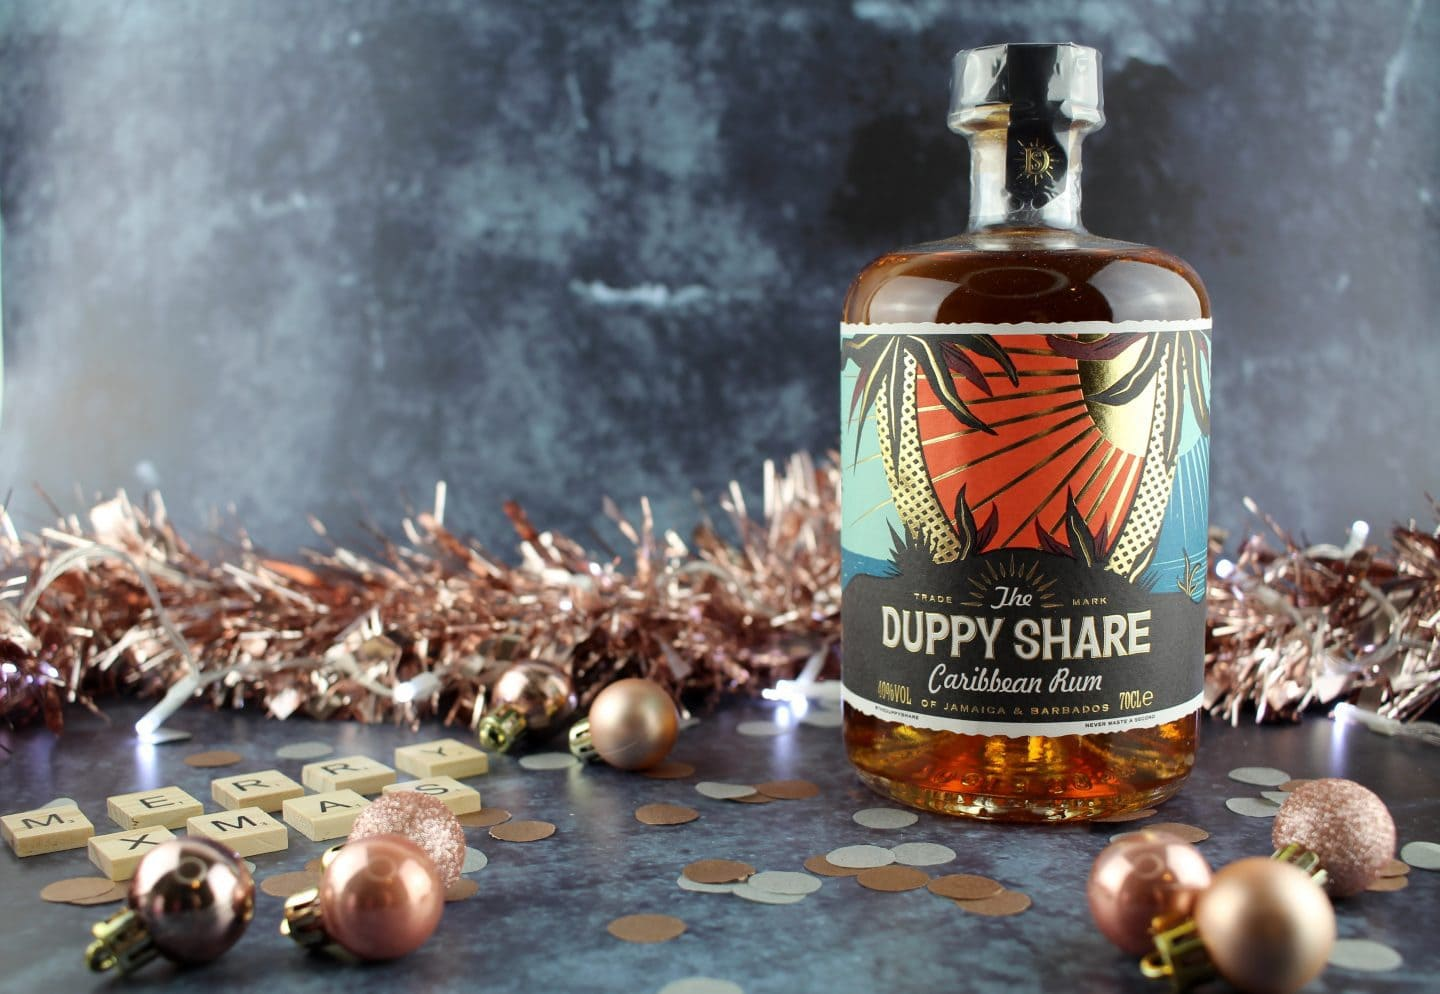 Duppy Share Rum